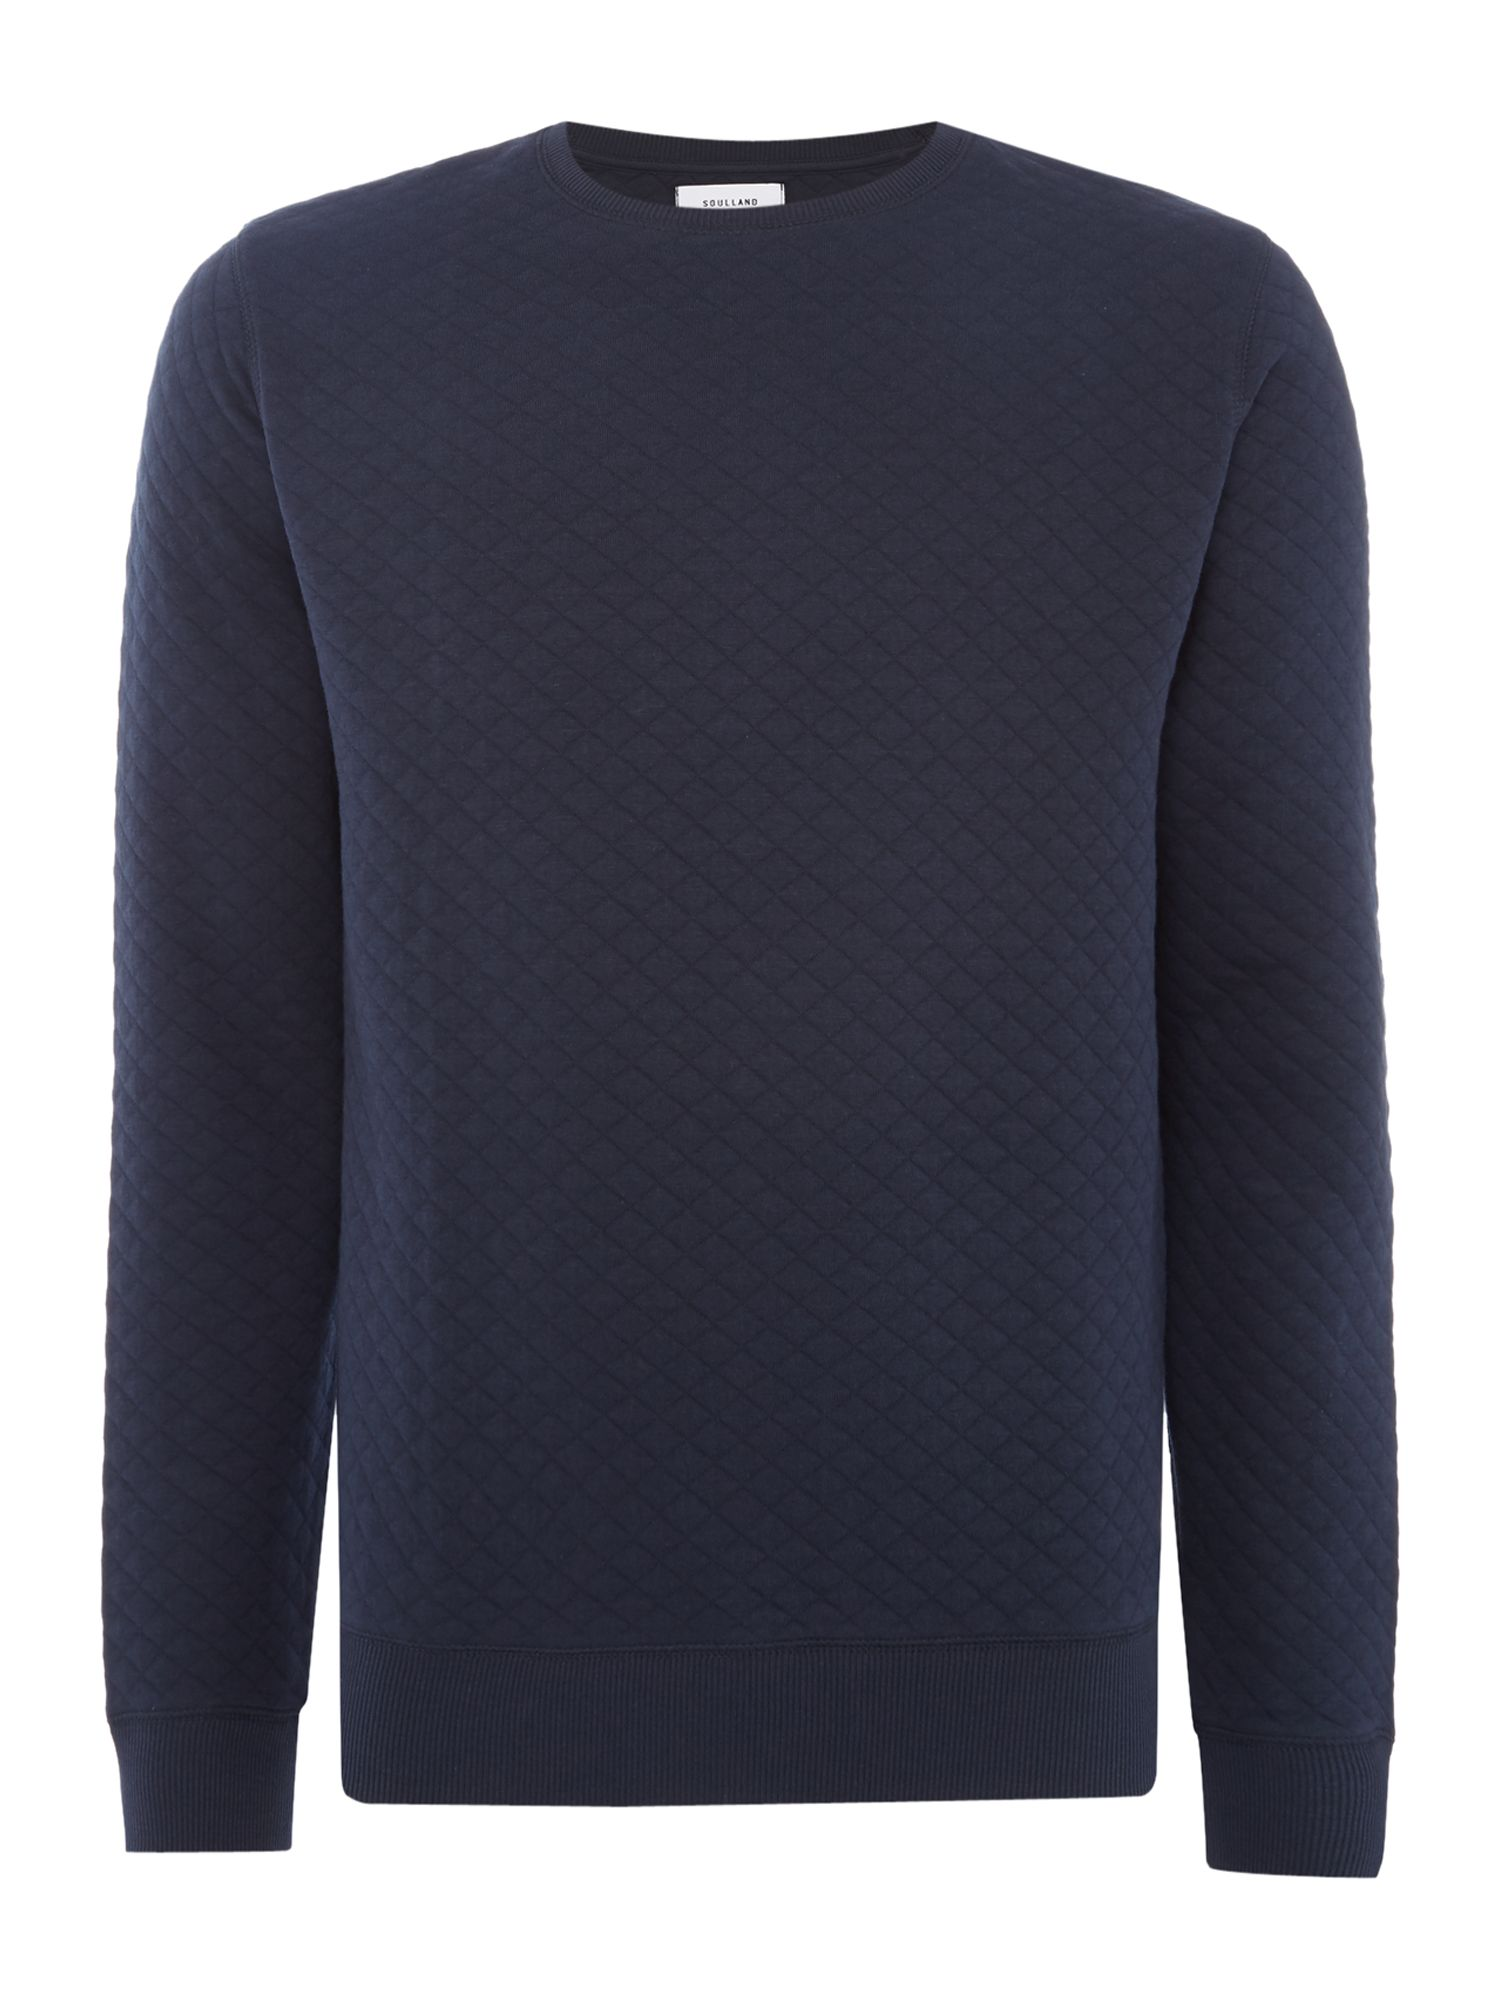 Men's Soulland Huddleston quilted crew neck sweat top, Blue